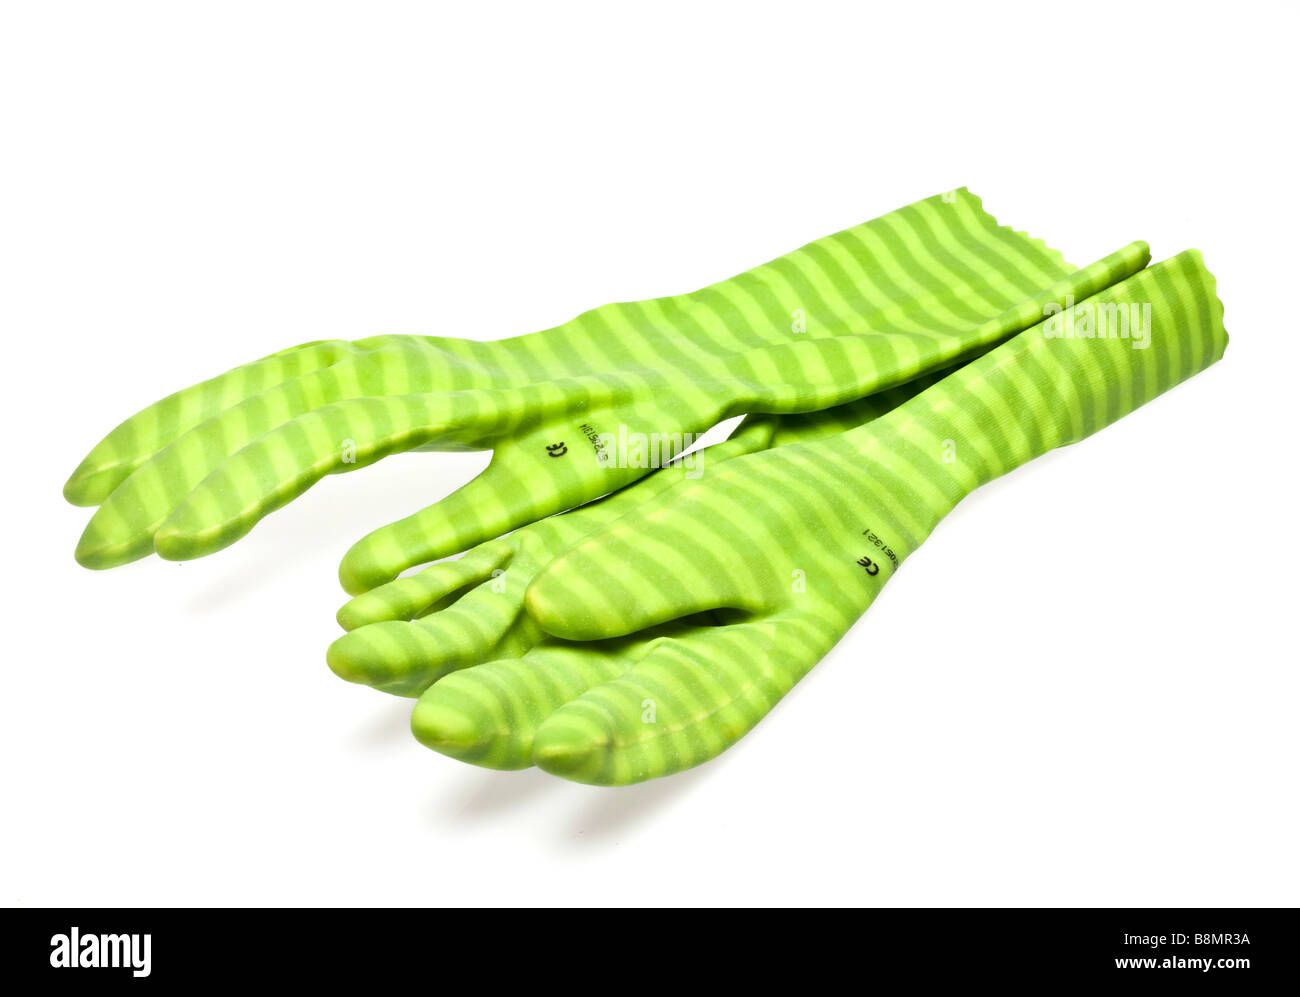 Pair of green stripey rubber gloves on white cutout - Stock Image